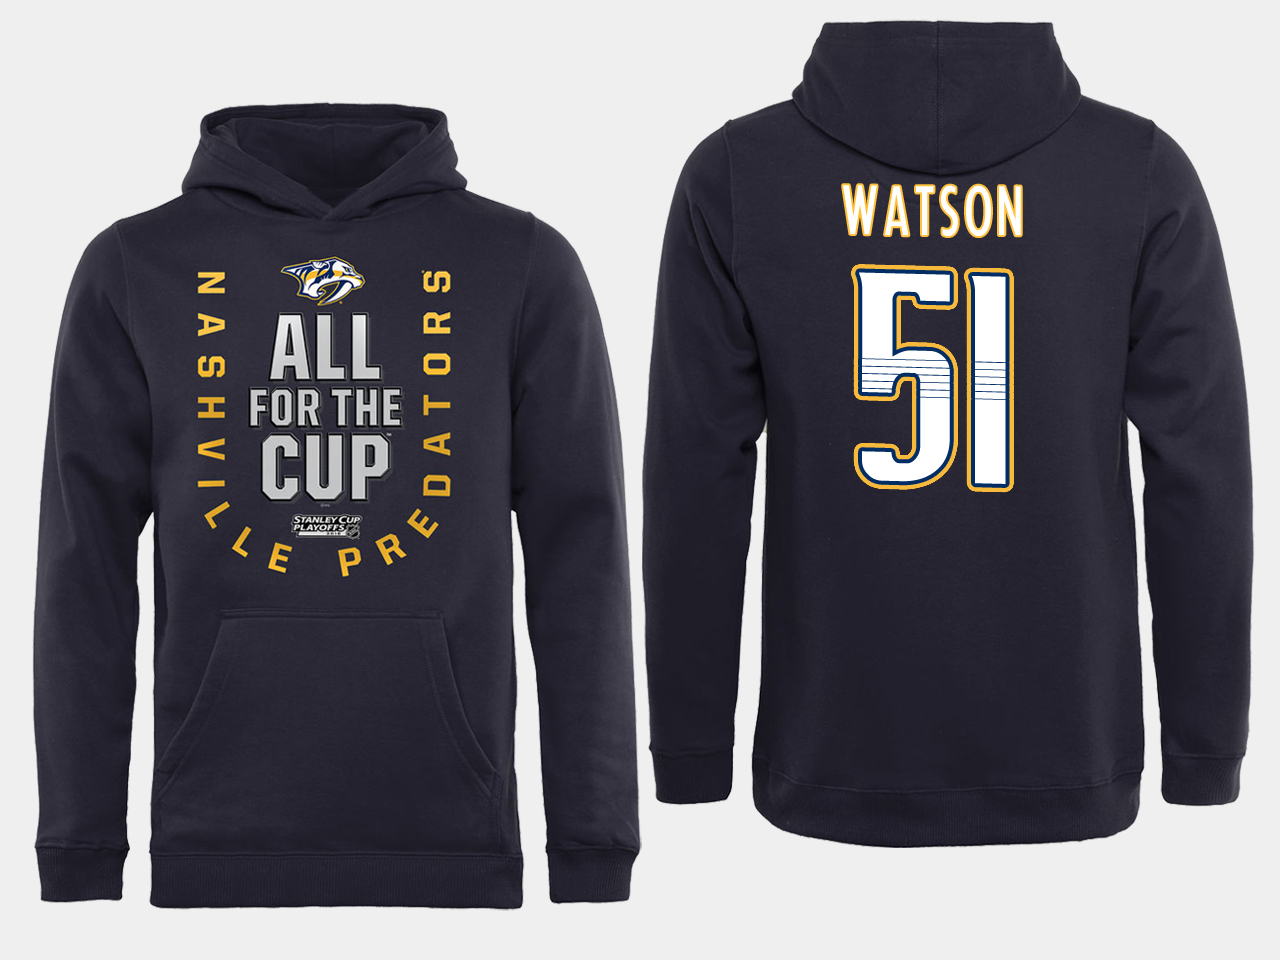 Men NHL Adidas Nashville Predators 51 Watson black ALL for the Cup hoodie